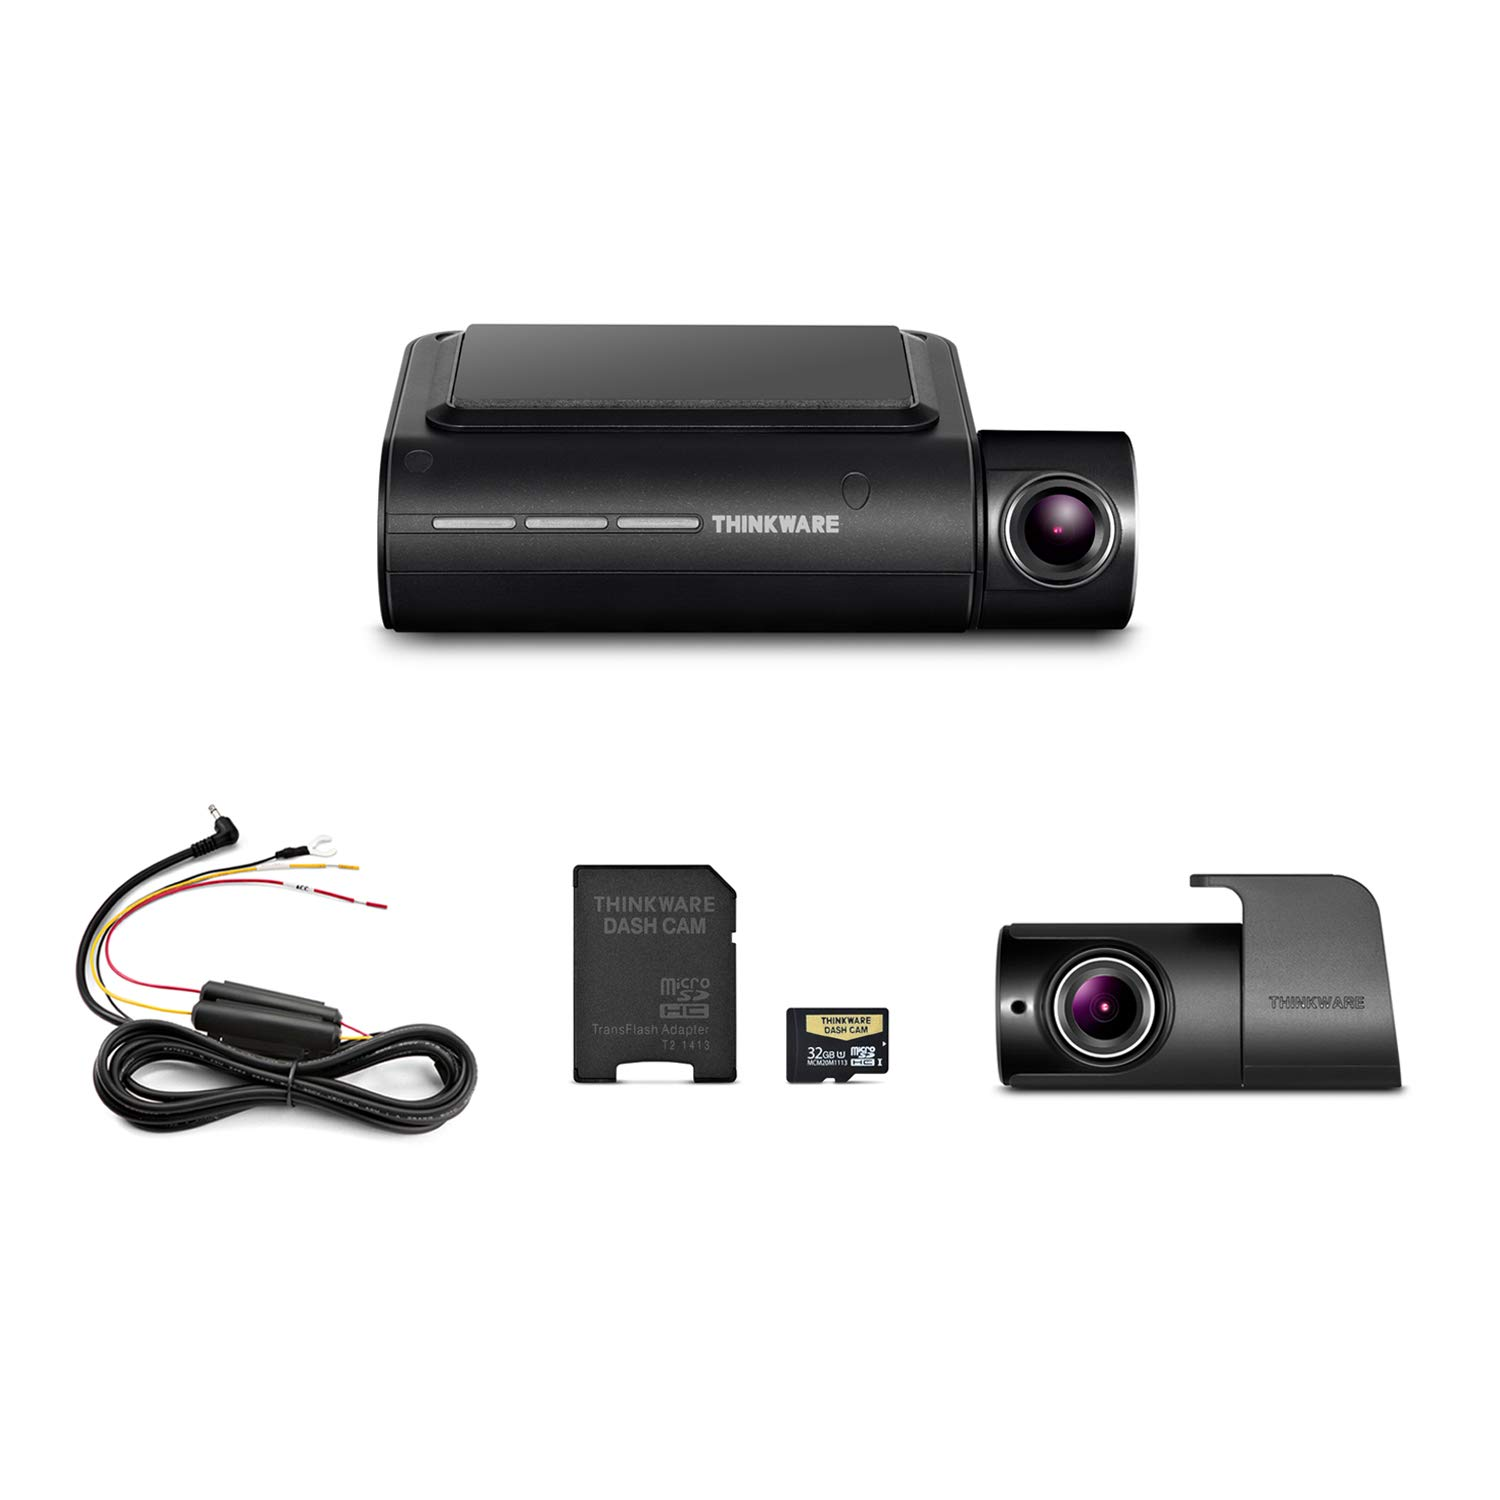 Thinkware F800 Pro Dash Cam Front and Rear Full HD 1080P Sony Starvis Super Night Vision | Cigarette Power Cable | 32GB MicroSD Card Incl. | Built-in Wi-Fi and GPS | Parking Mode